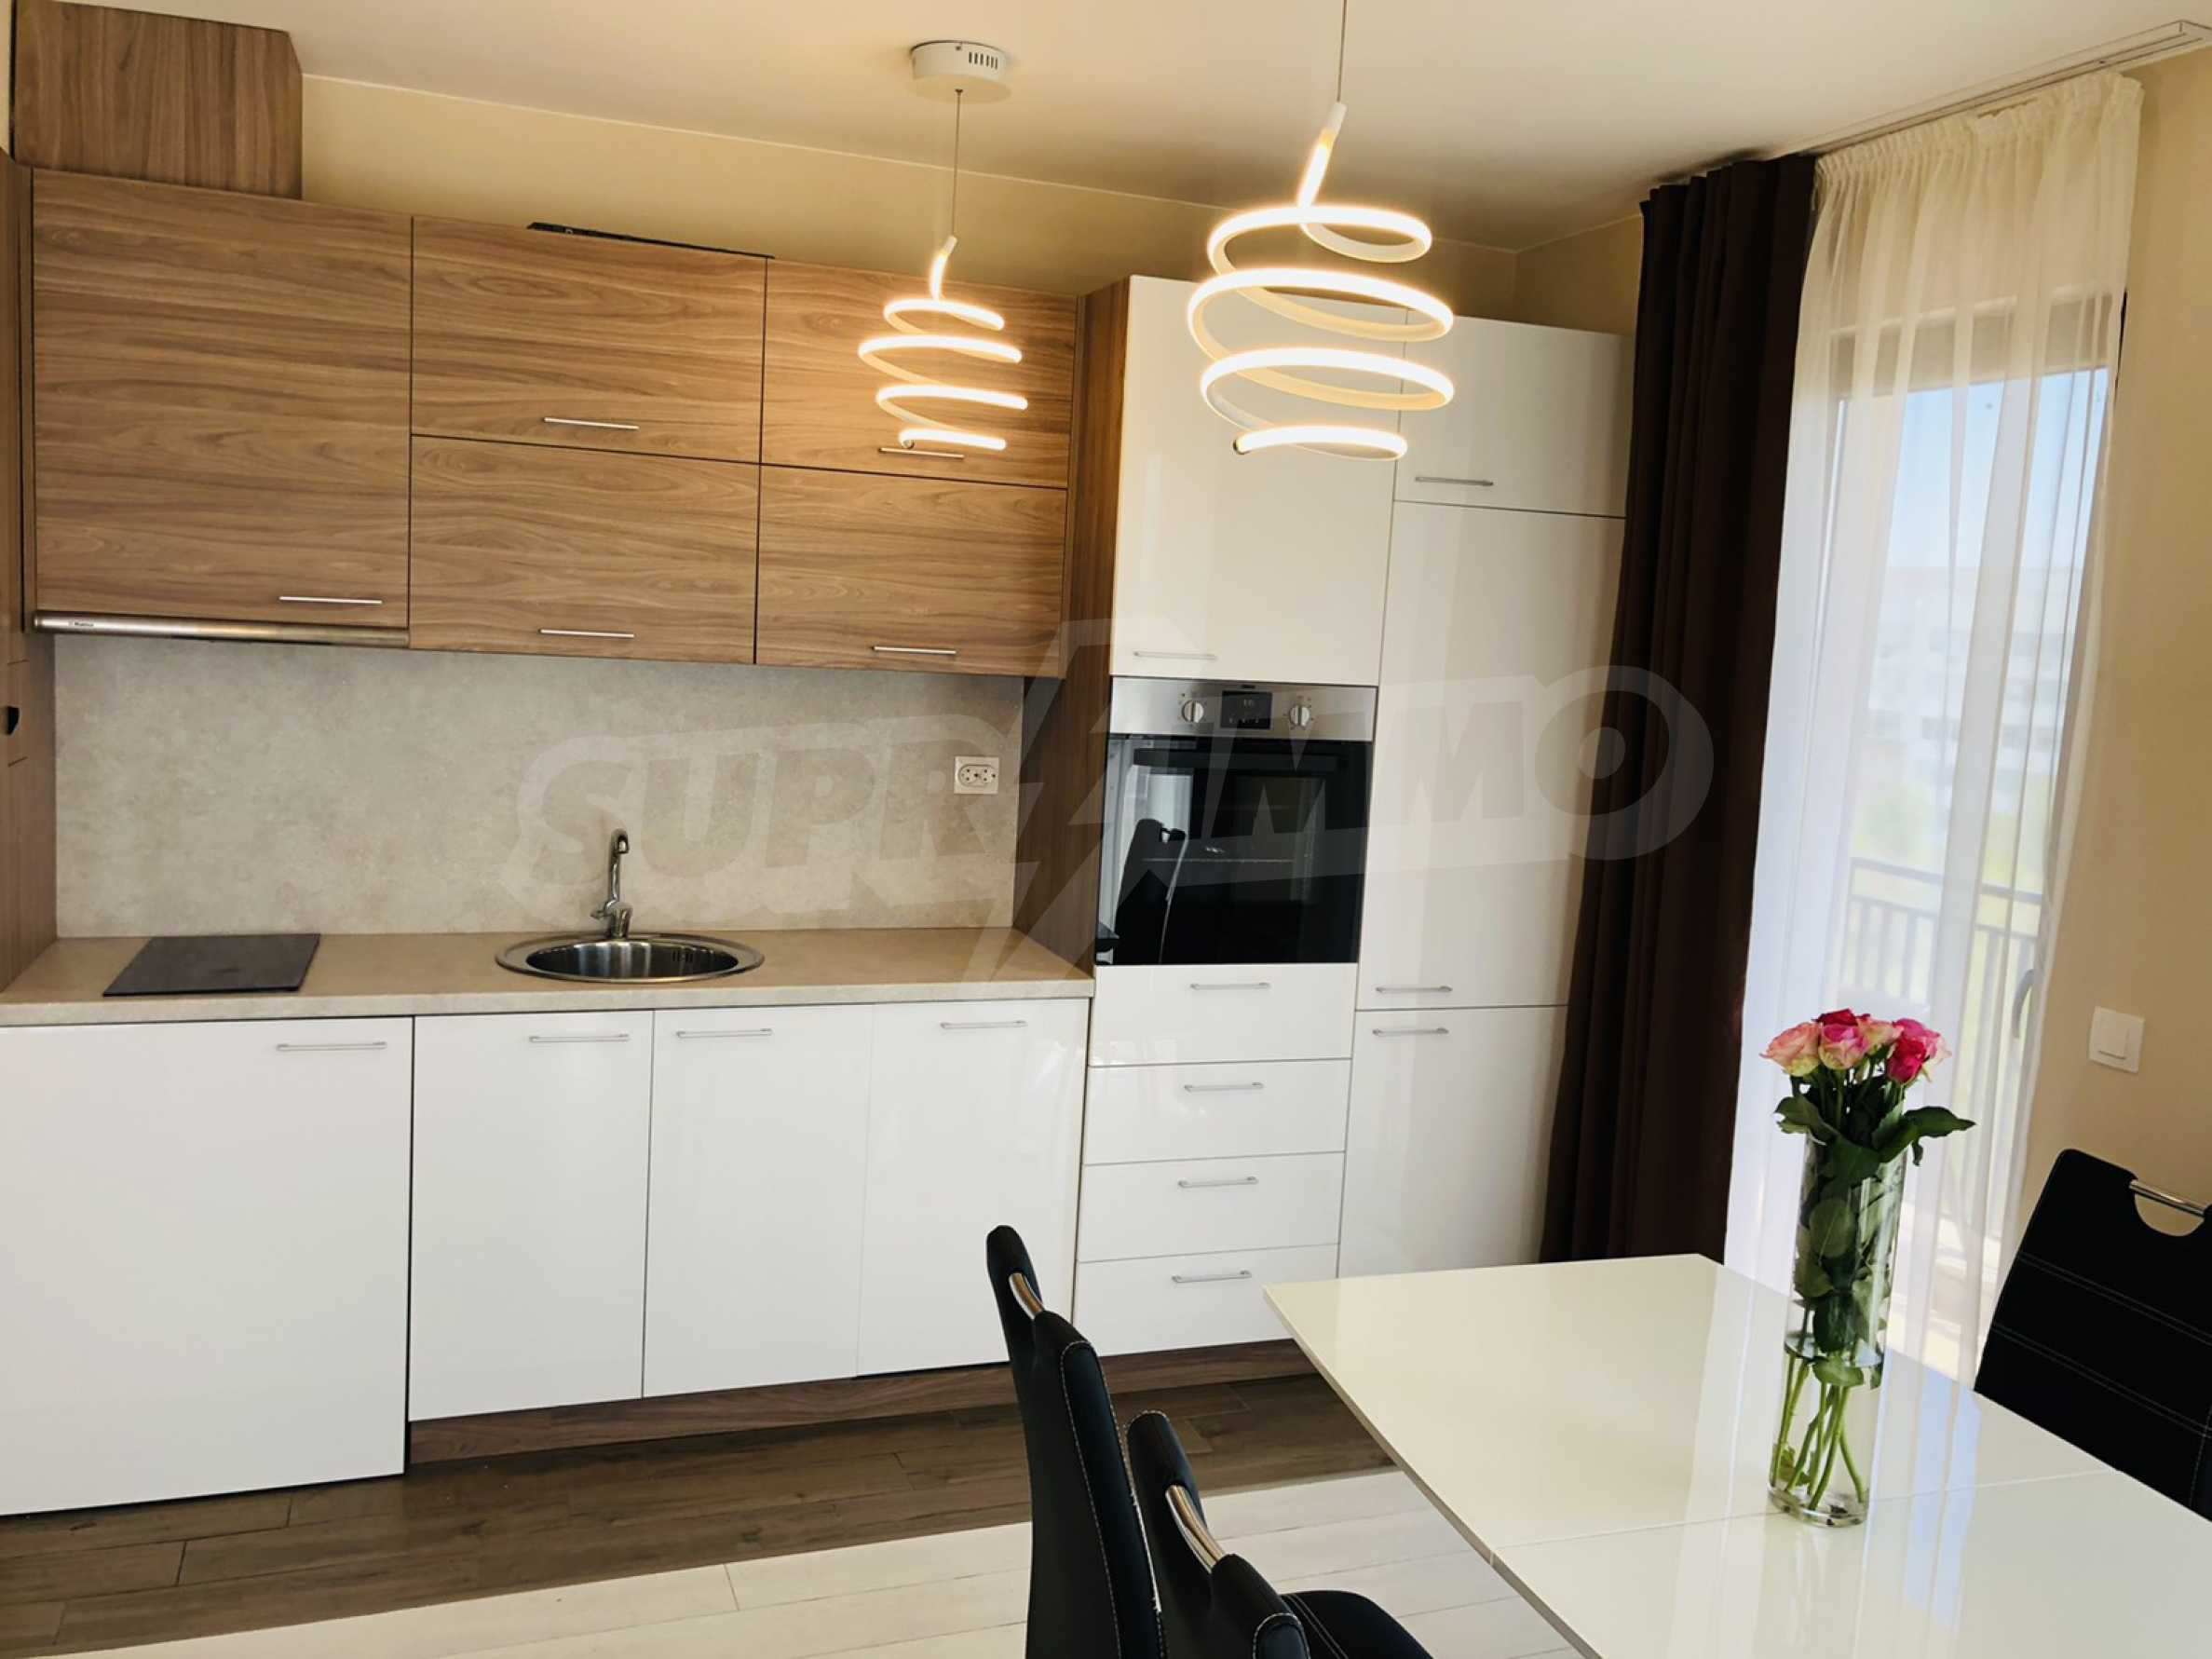 Two-bedroom, fully furnished, designer apartment in Student City 1